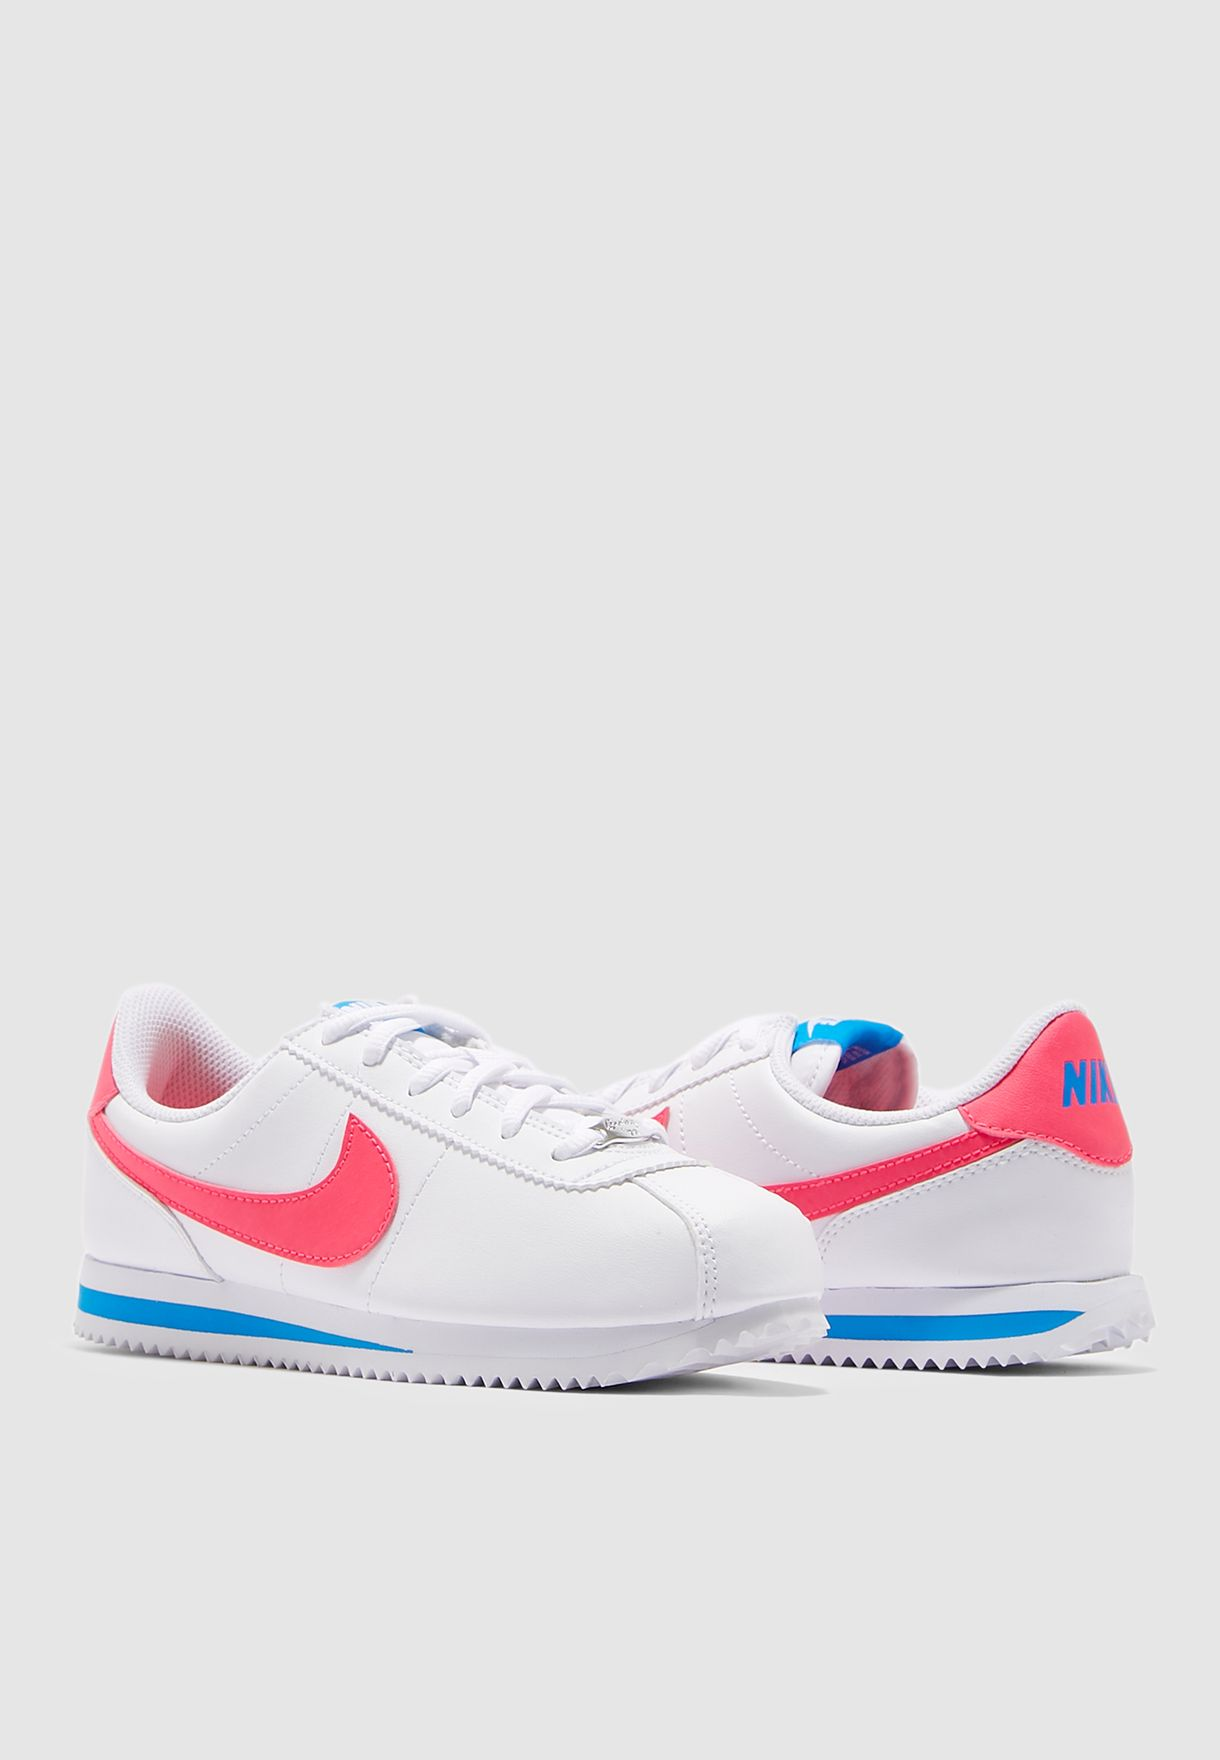 pistón Religioso Melódico  Buy Nike white Youth Cortez Basic SL for Kids in MENA, Worldwide | 904764 -107